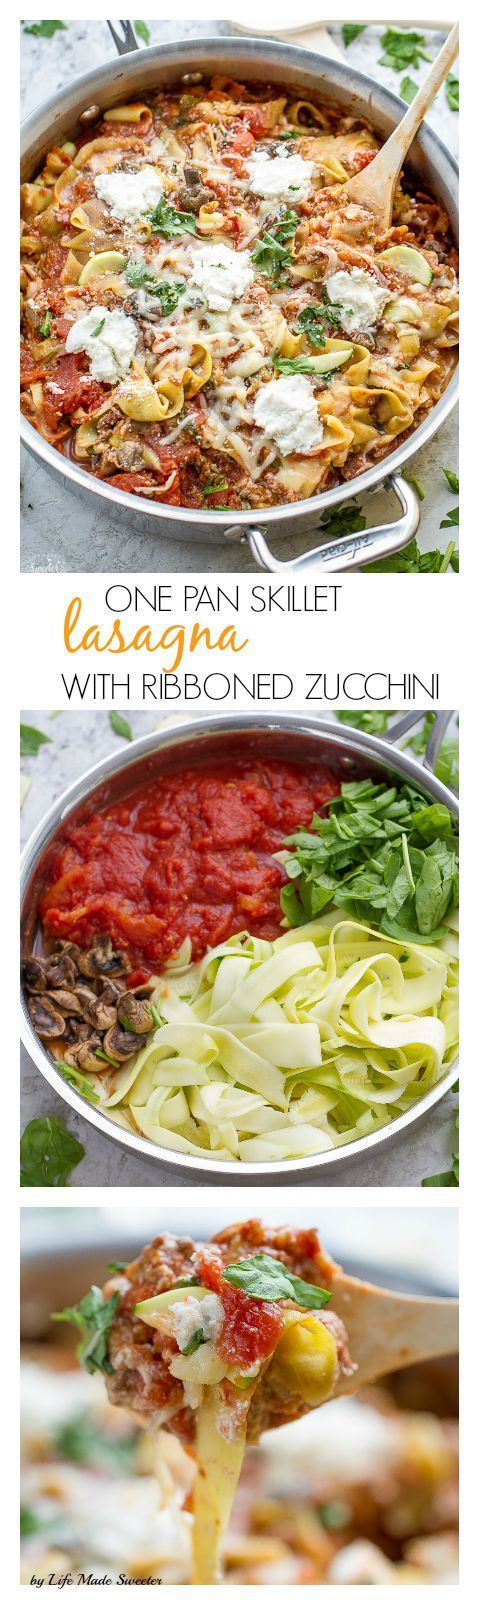 One Pan Skillet Ribbon Zucchini Noodles (Zoodles) makes a HEALTHY, easy, gluten free, lower carb dinner perfect for weeknights. Easy to use your mandoline or a spiralizer for spiralized veggies.